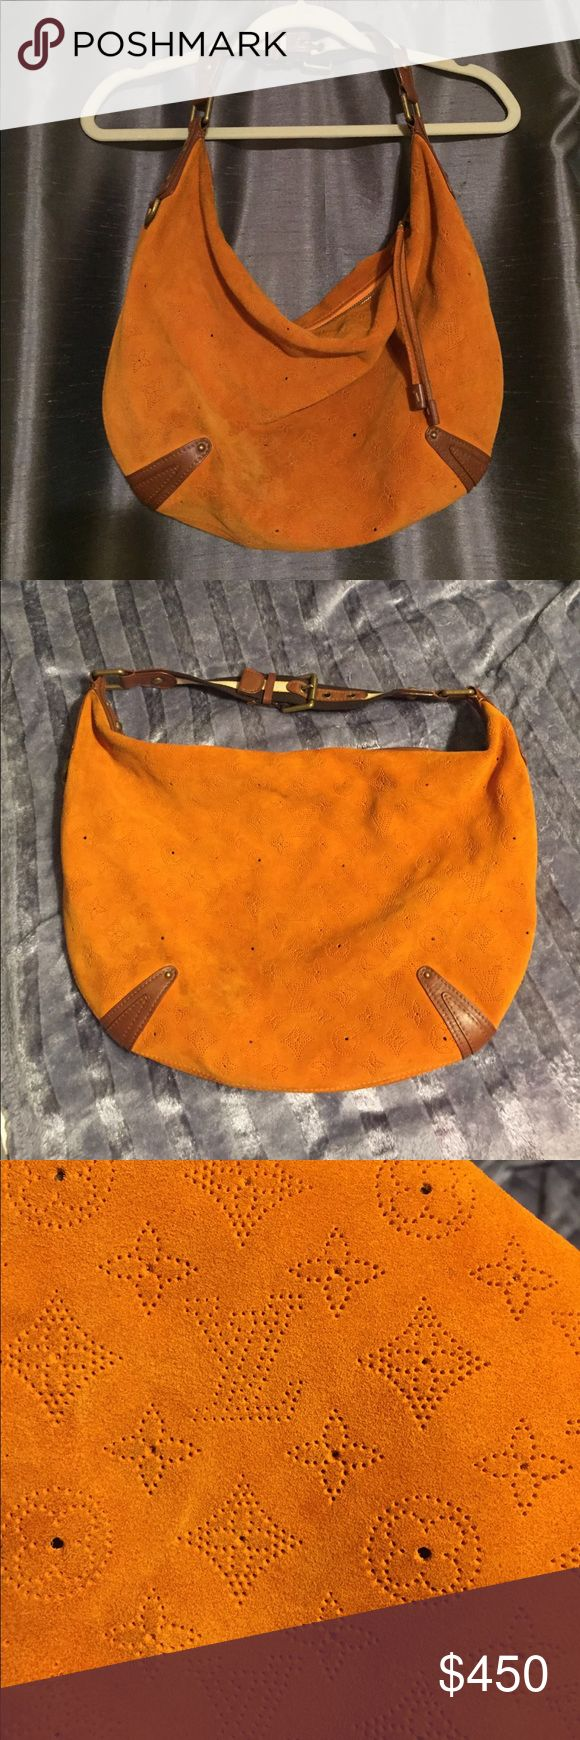 """Luis Vuitton orange suede Onatah bag Limited edition Louis Vuitton Mais Onatah Hobo bag. It is made of soft orange suede that is perforated with the LV Monogram pattern and the fleur-de-lis design. It comes with an adjustable shoulder strap and a textile print, Jacquard-lined interior with a patch pocket.  NO DUST BAG. Few slight stains as pictured. Could use cleaning.  Measurements: Handle Drop 8-9"""", Height 12.5"""", Width 18"""", Depth  Model: Onatah Hobo Louis Vuitton Bags Hobos"""